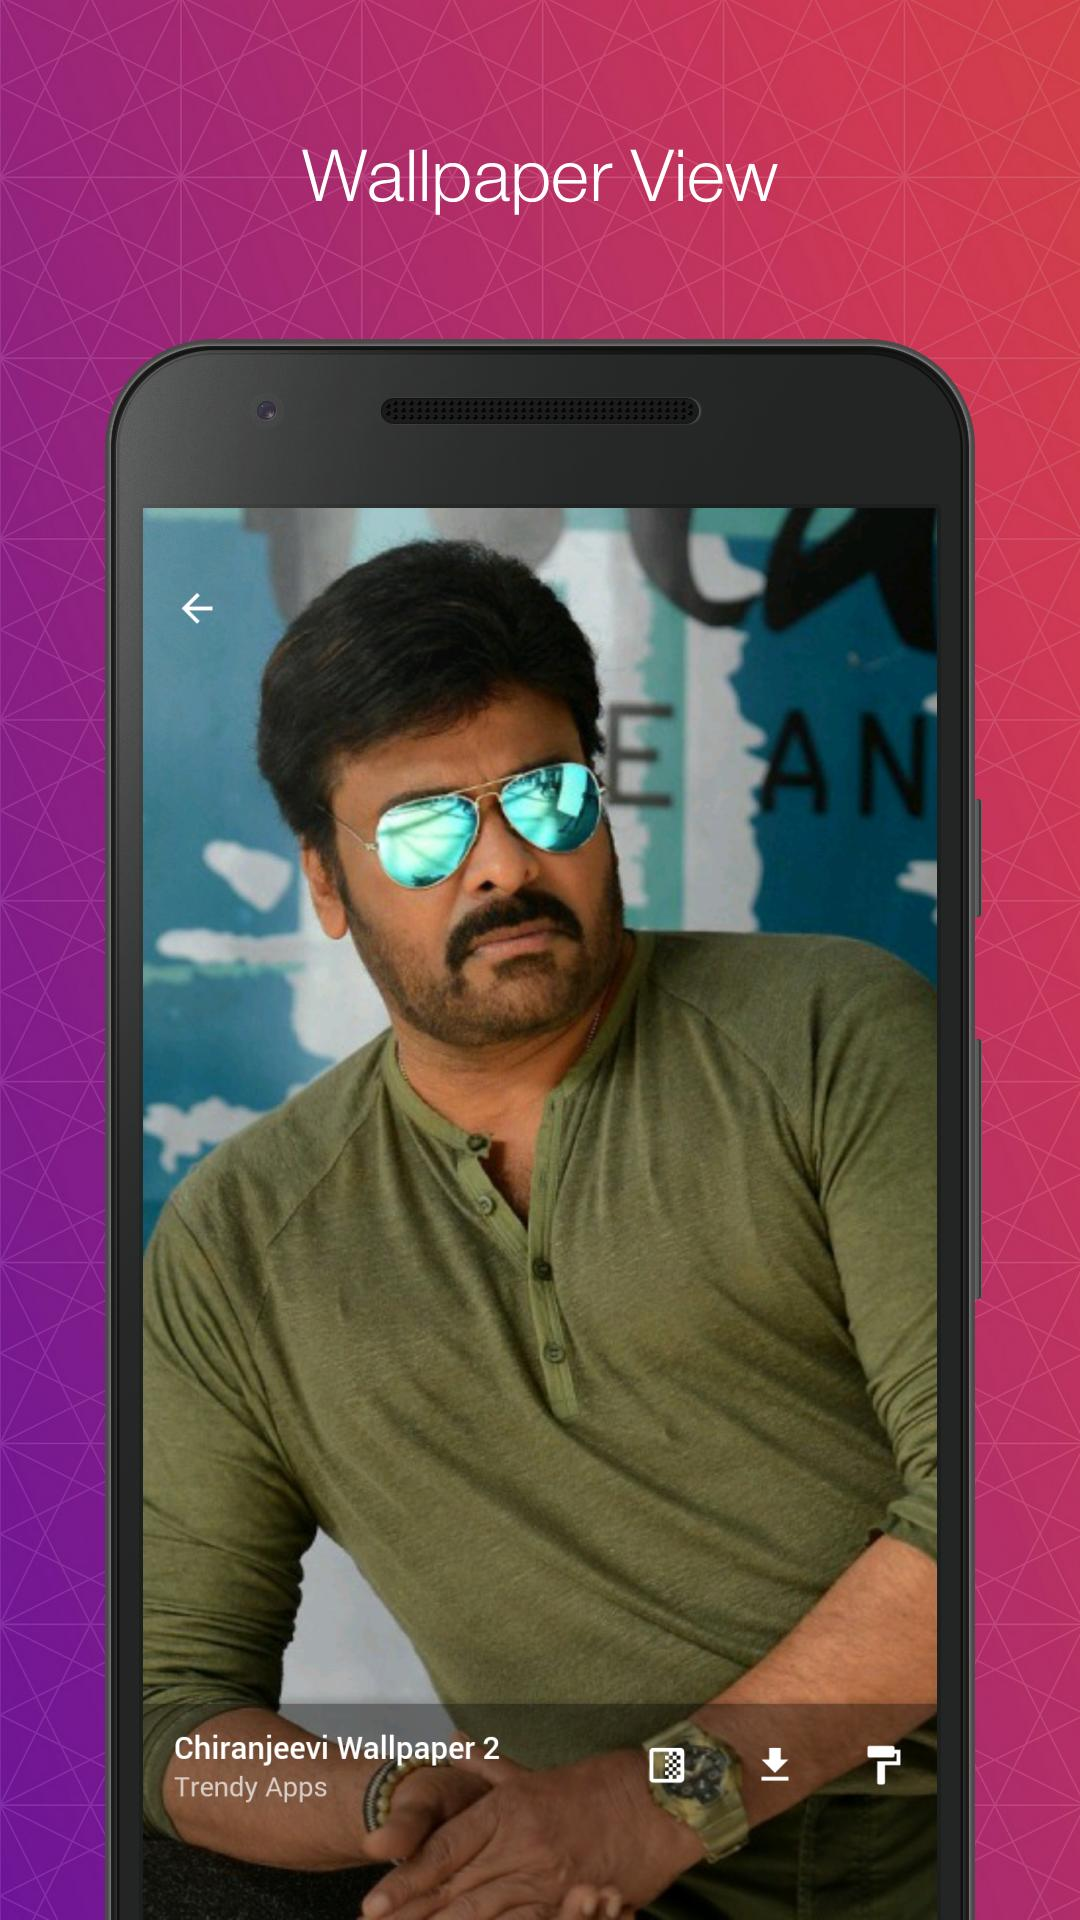 chiranjeevi hd wallpapers backgrounds for android apk download chiranjeevi hd wallpapers backgrounds